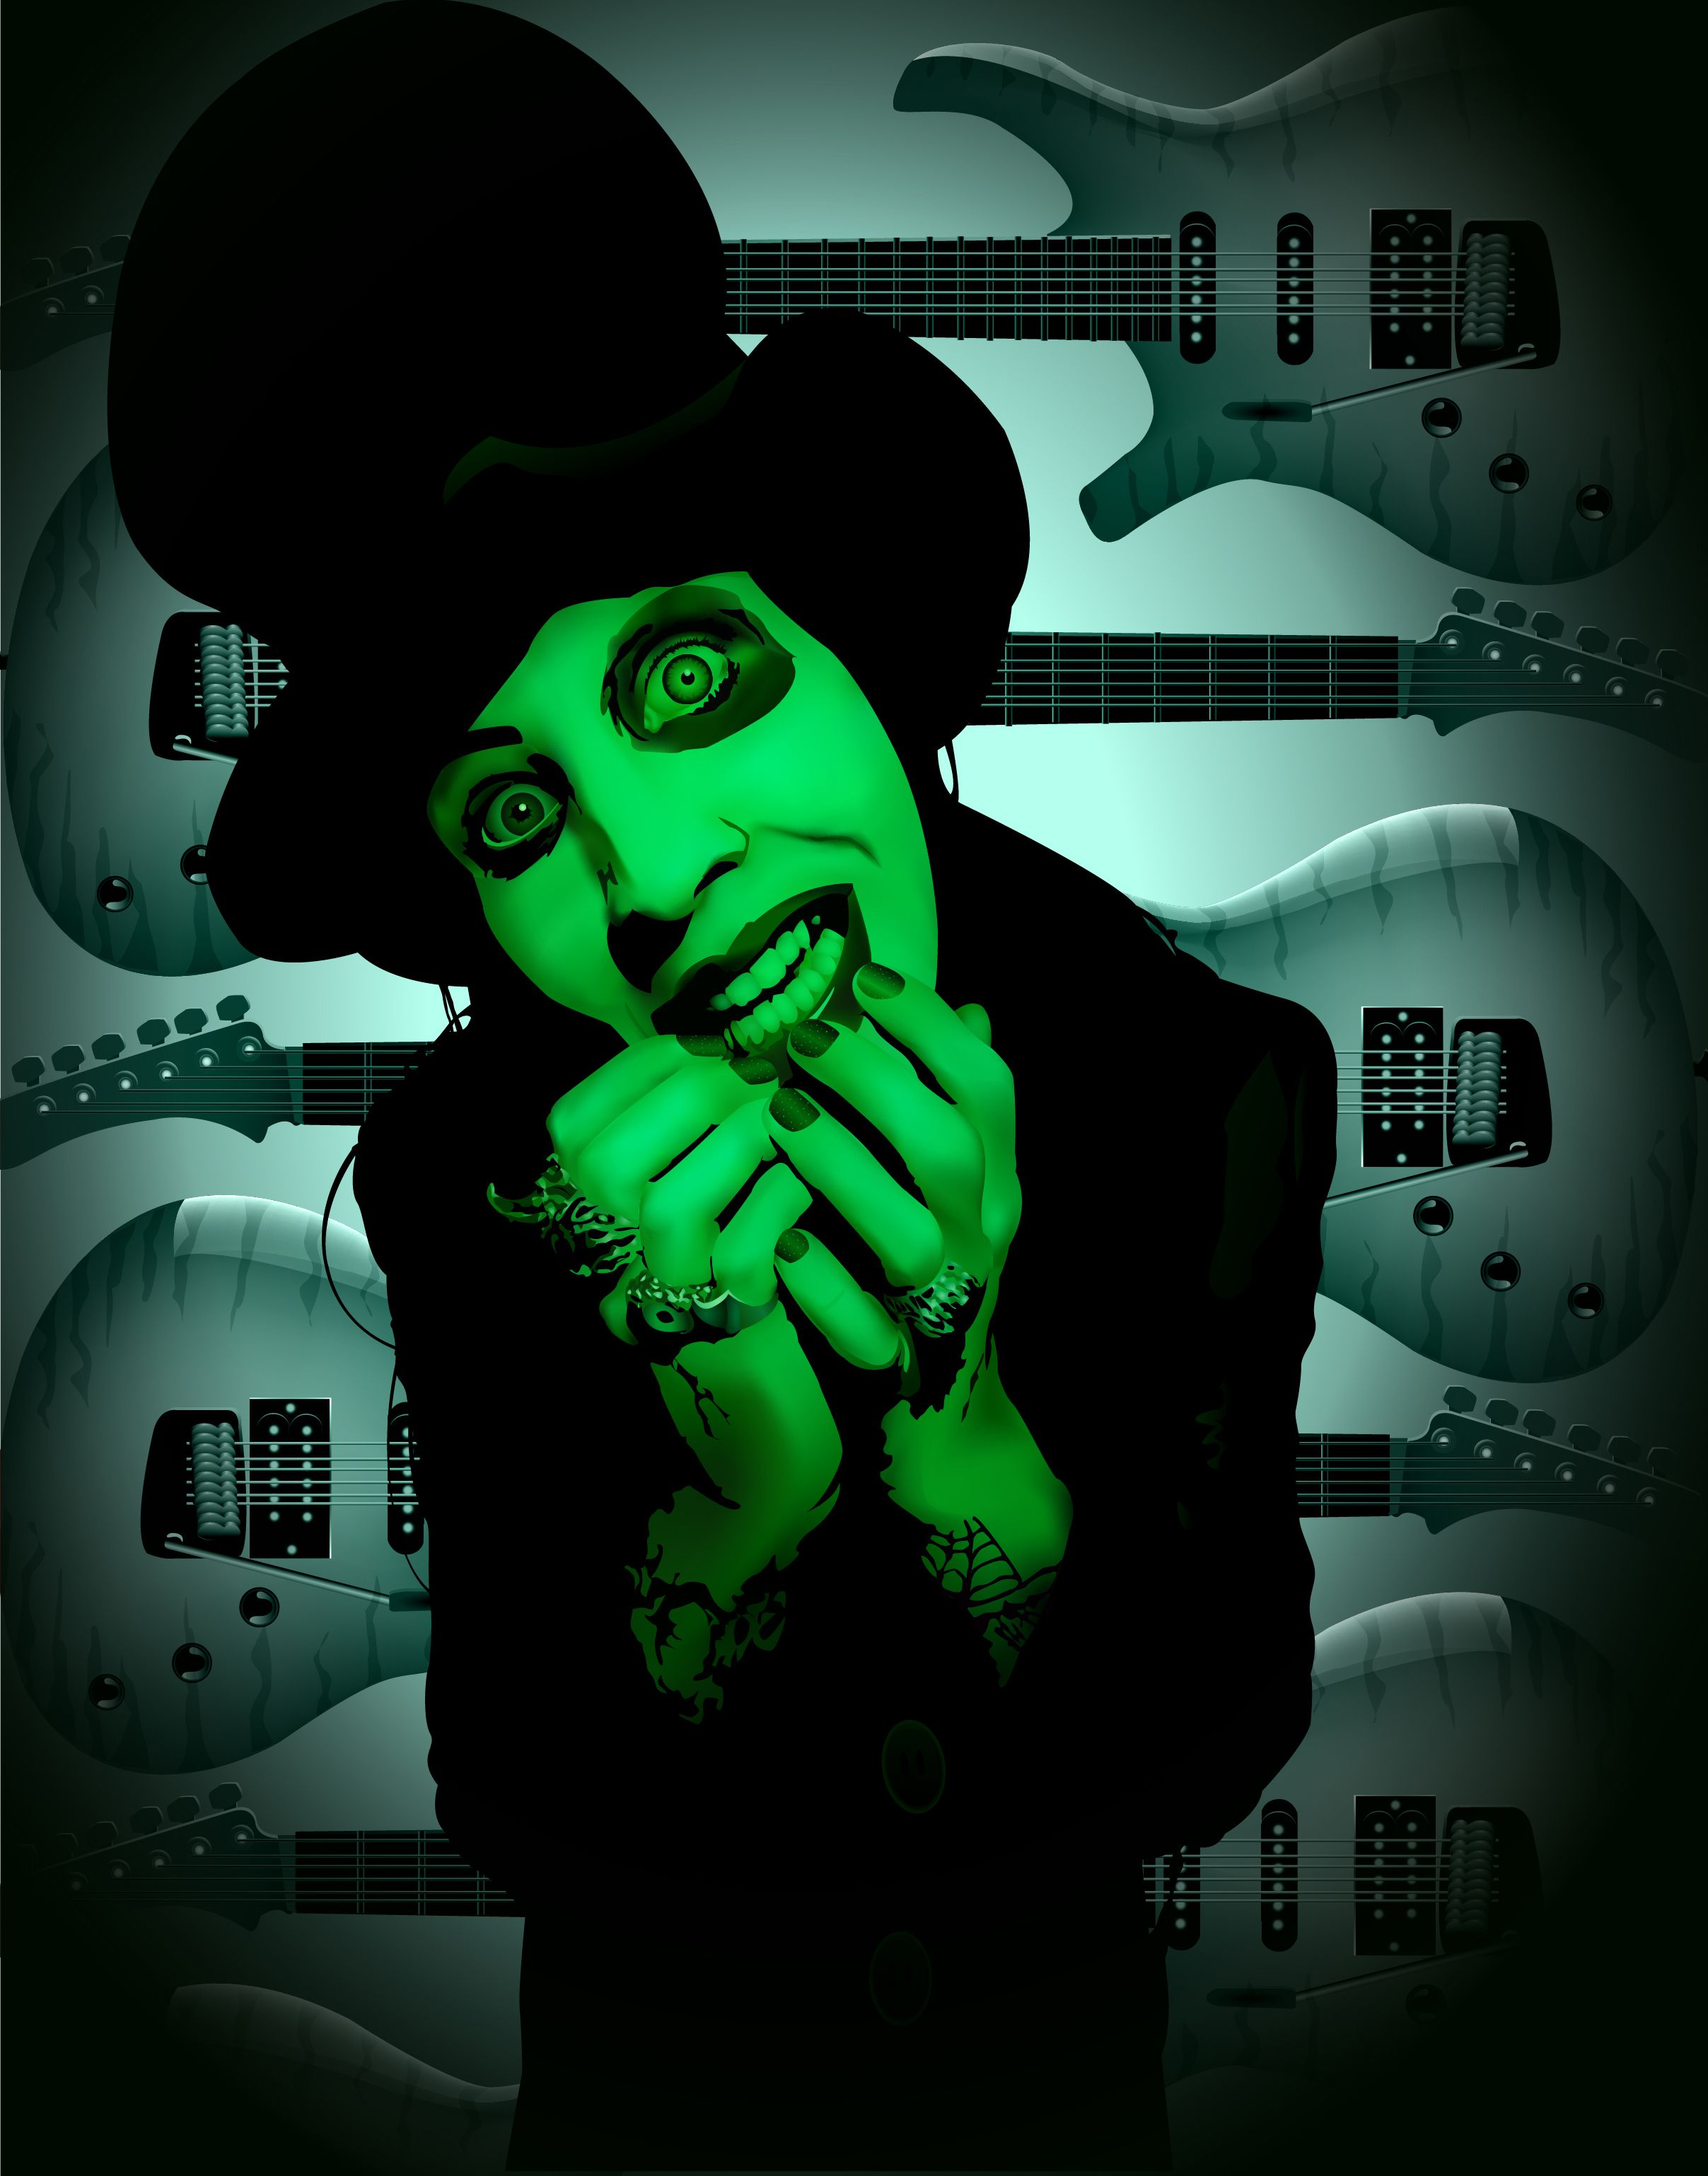 Hd Android Marilyn Manson Wallpapers Wallpaper Cave